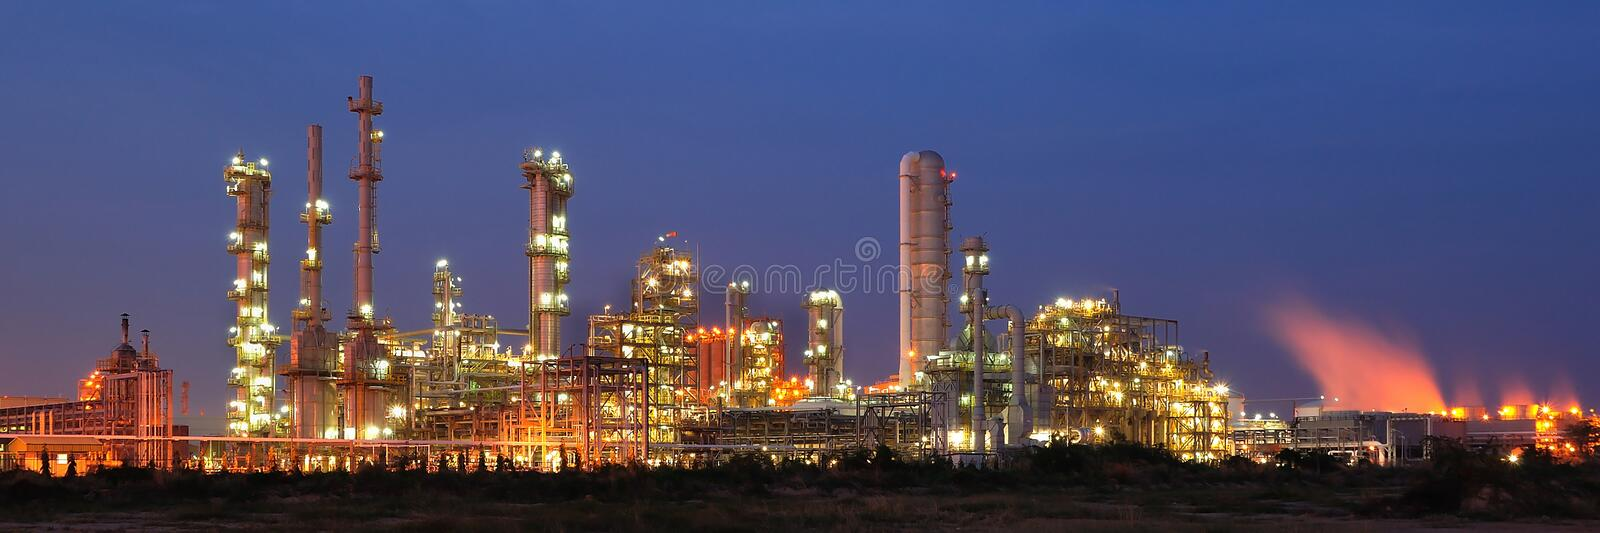 Download Petrochemical plant stock image. Image of catalytic, chimney - 19298295